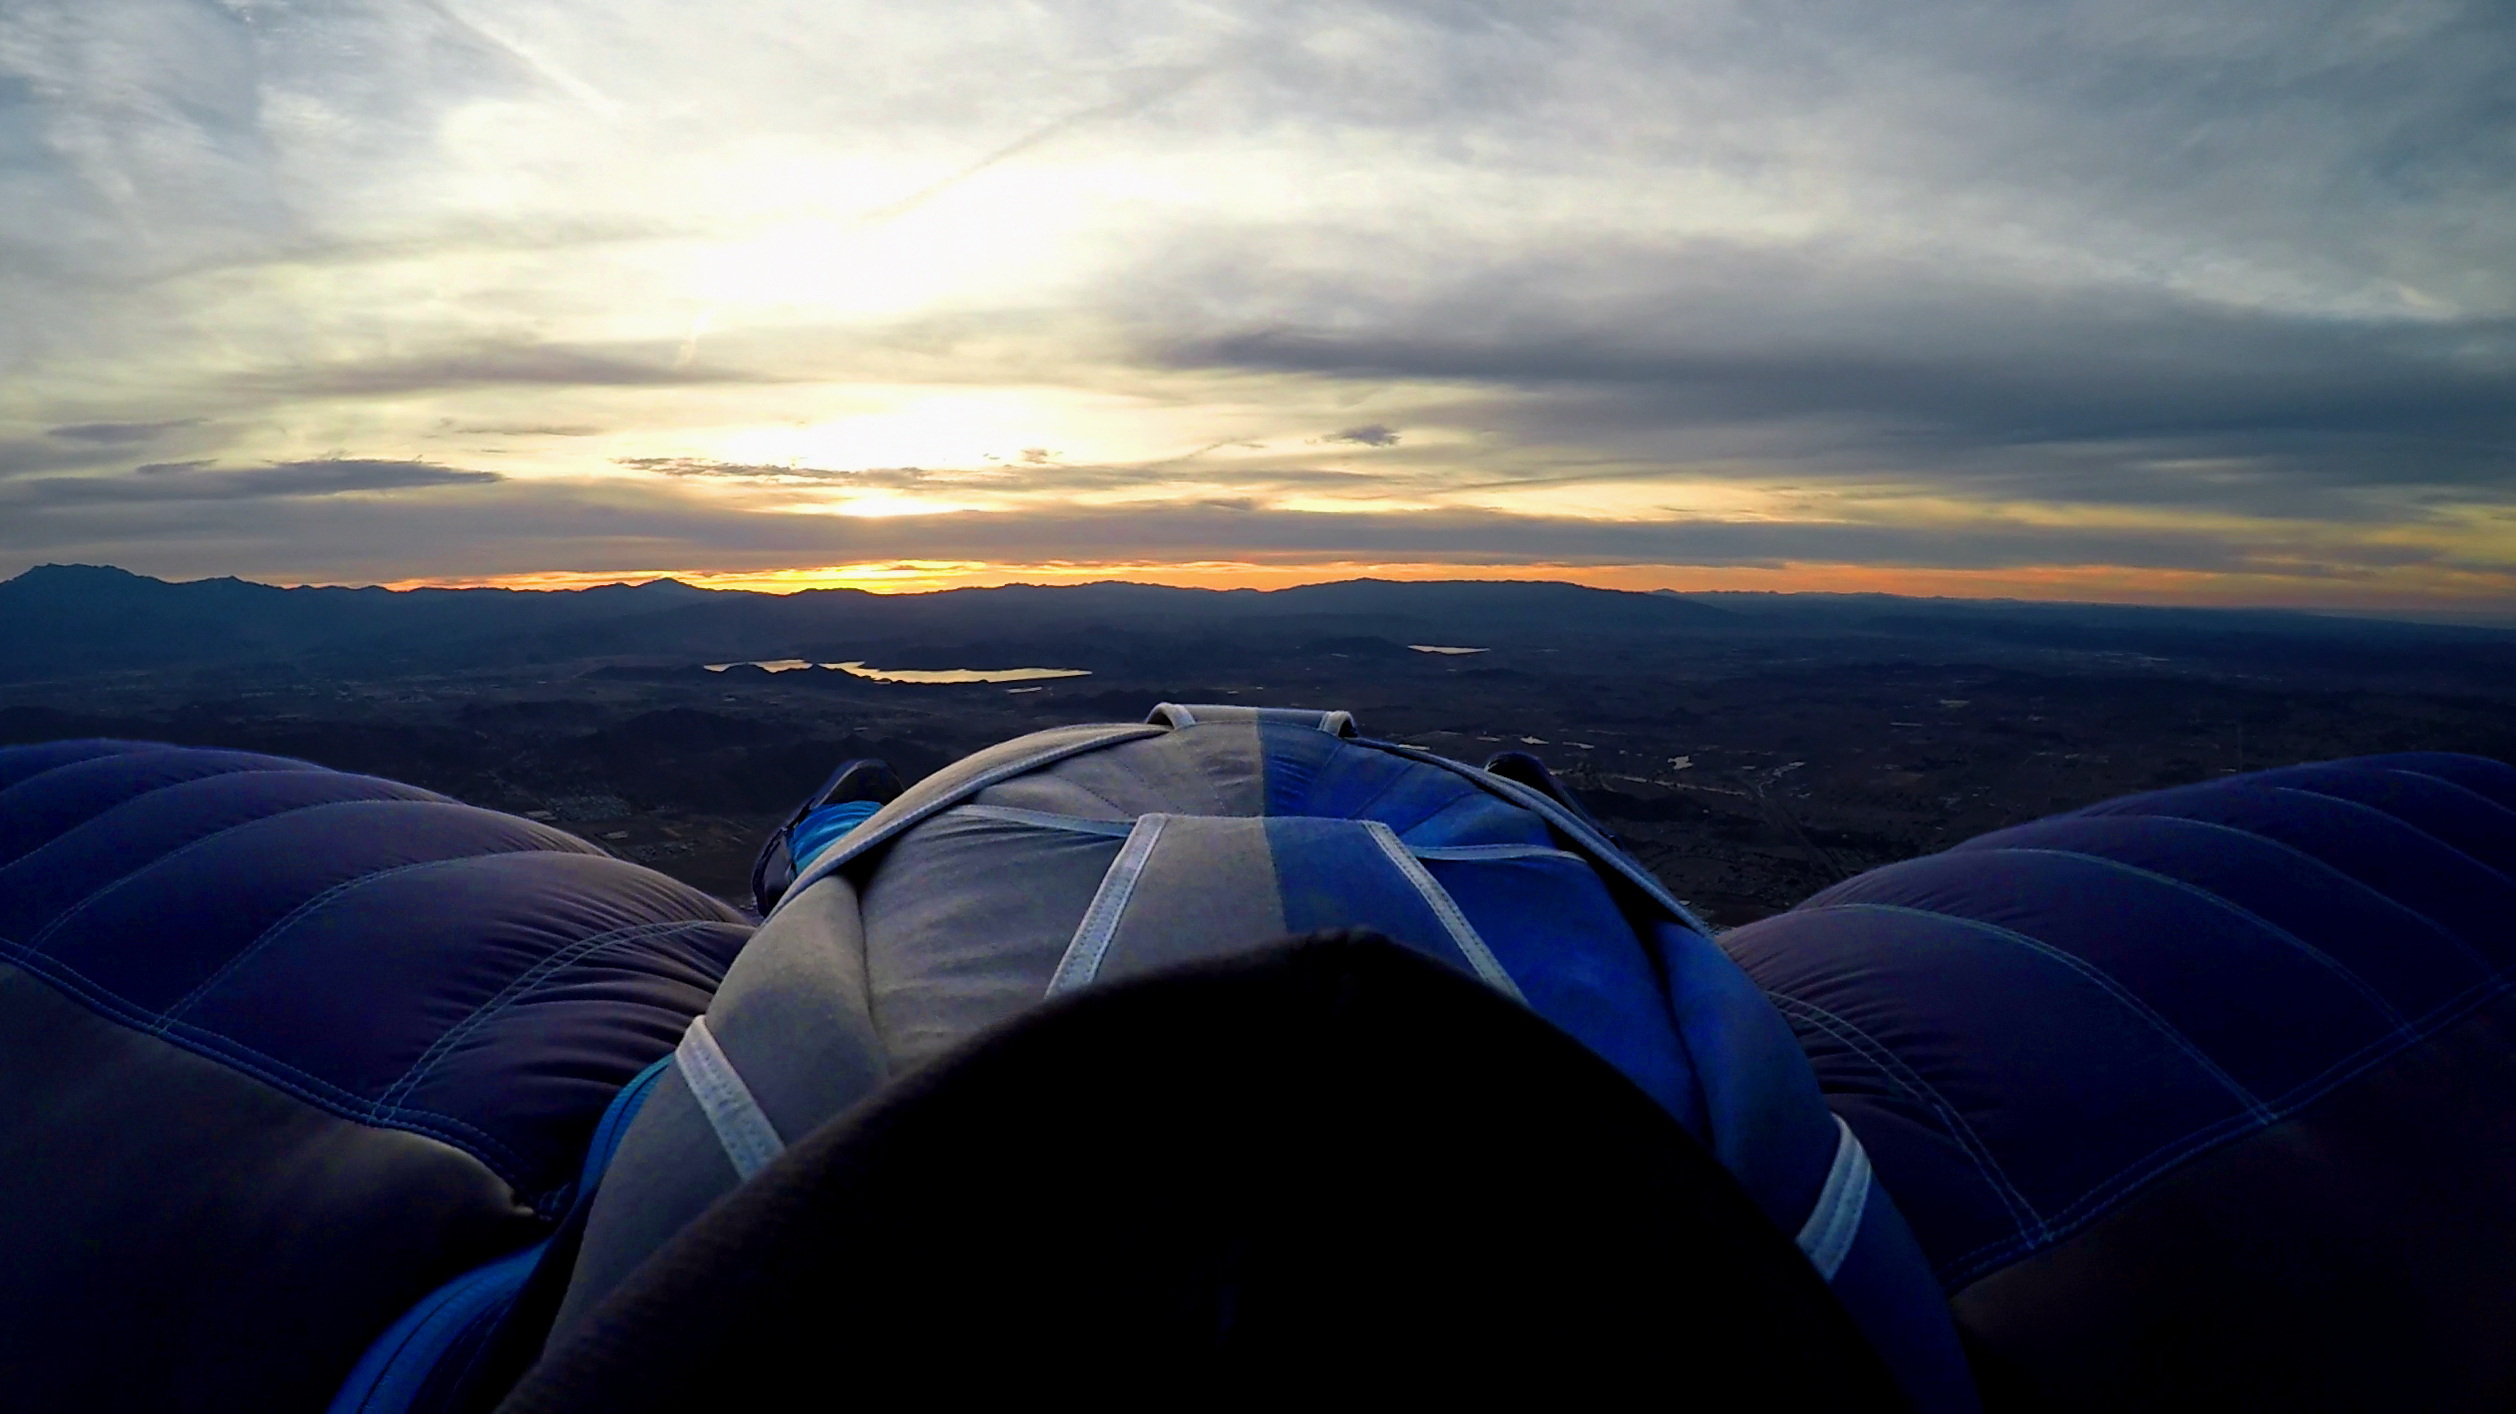 Wingsuiting from a balloon at sunrise